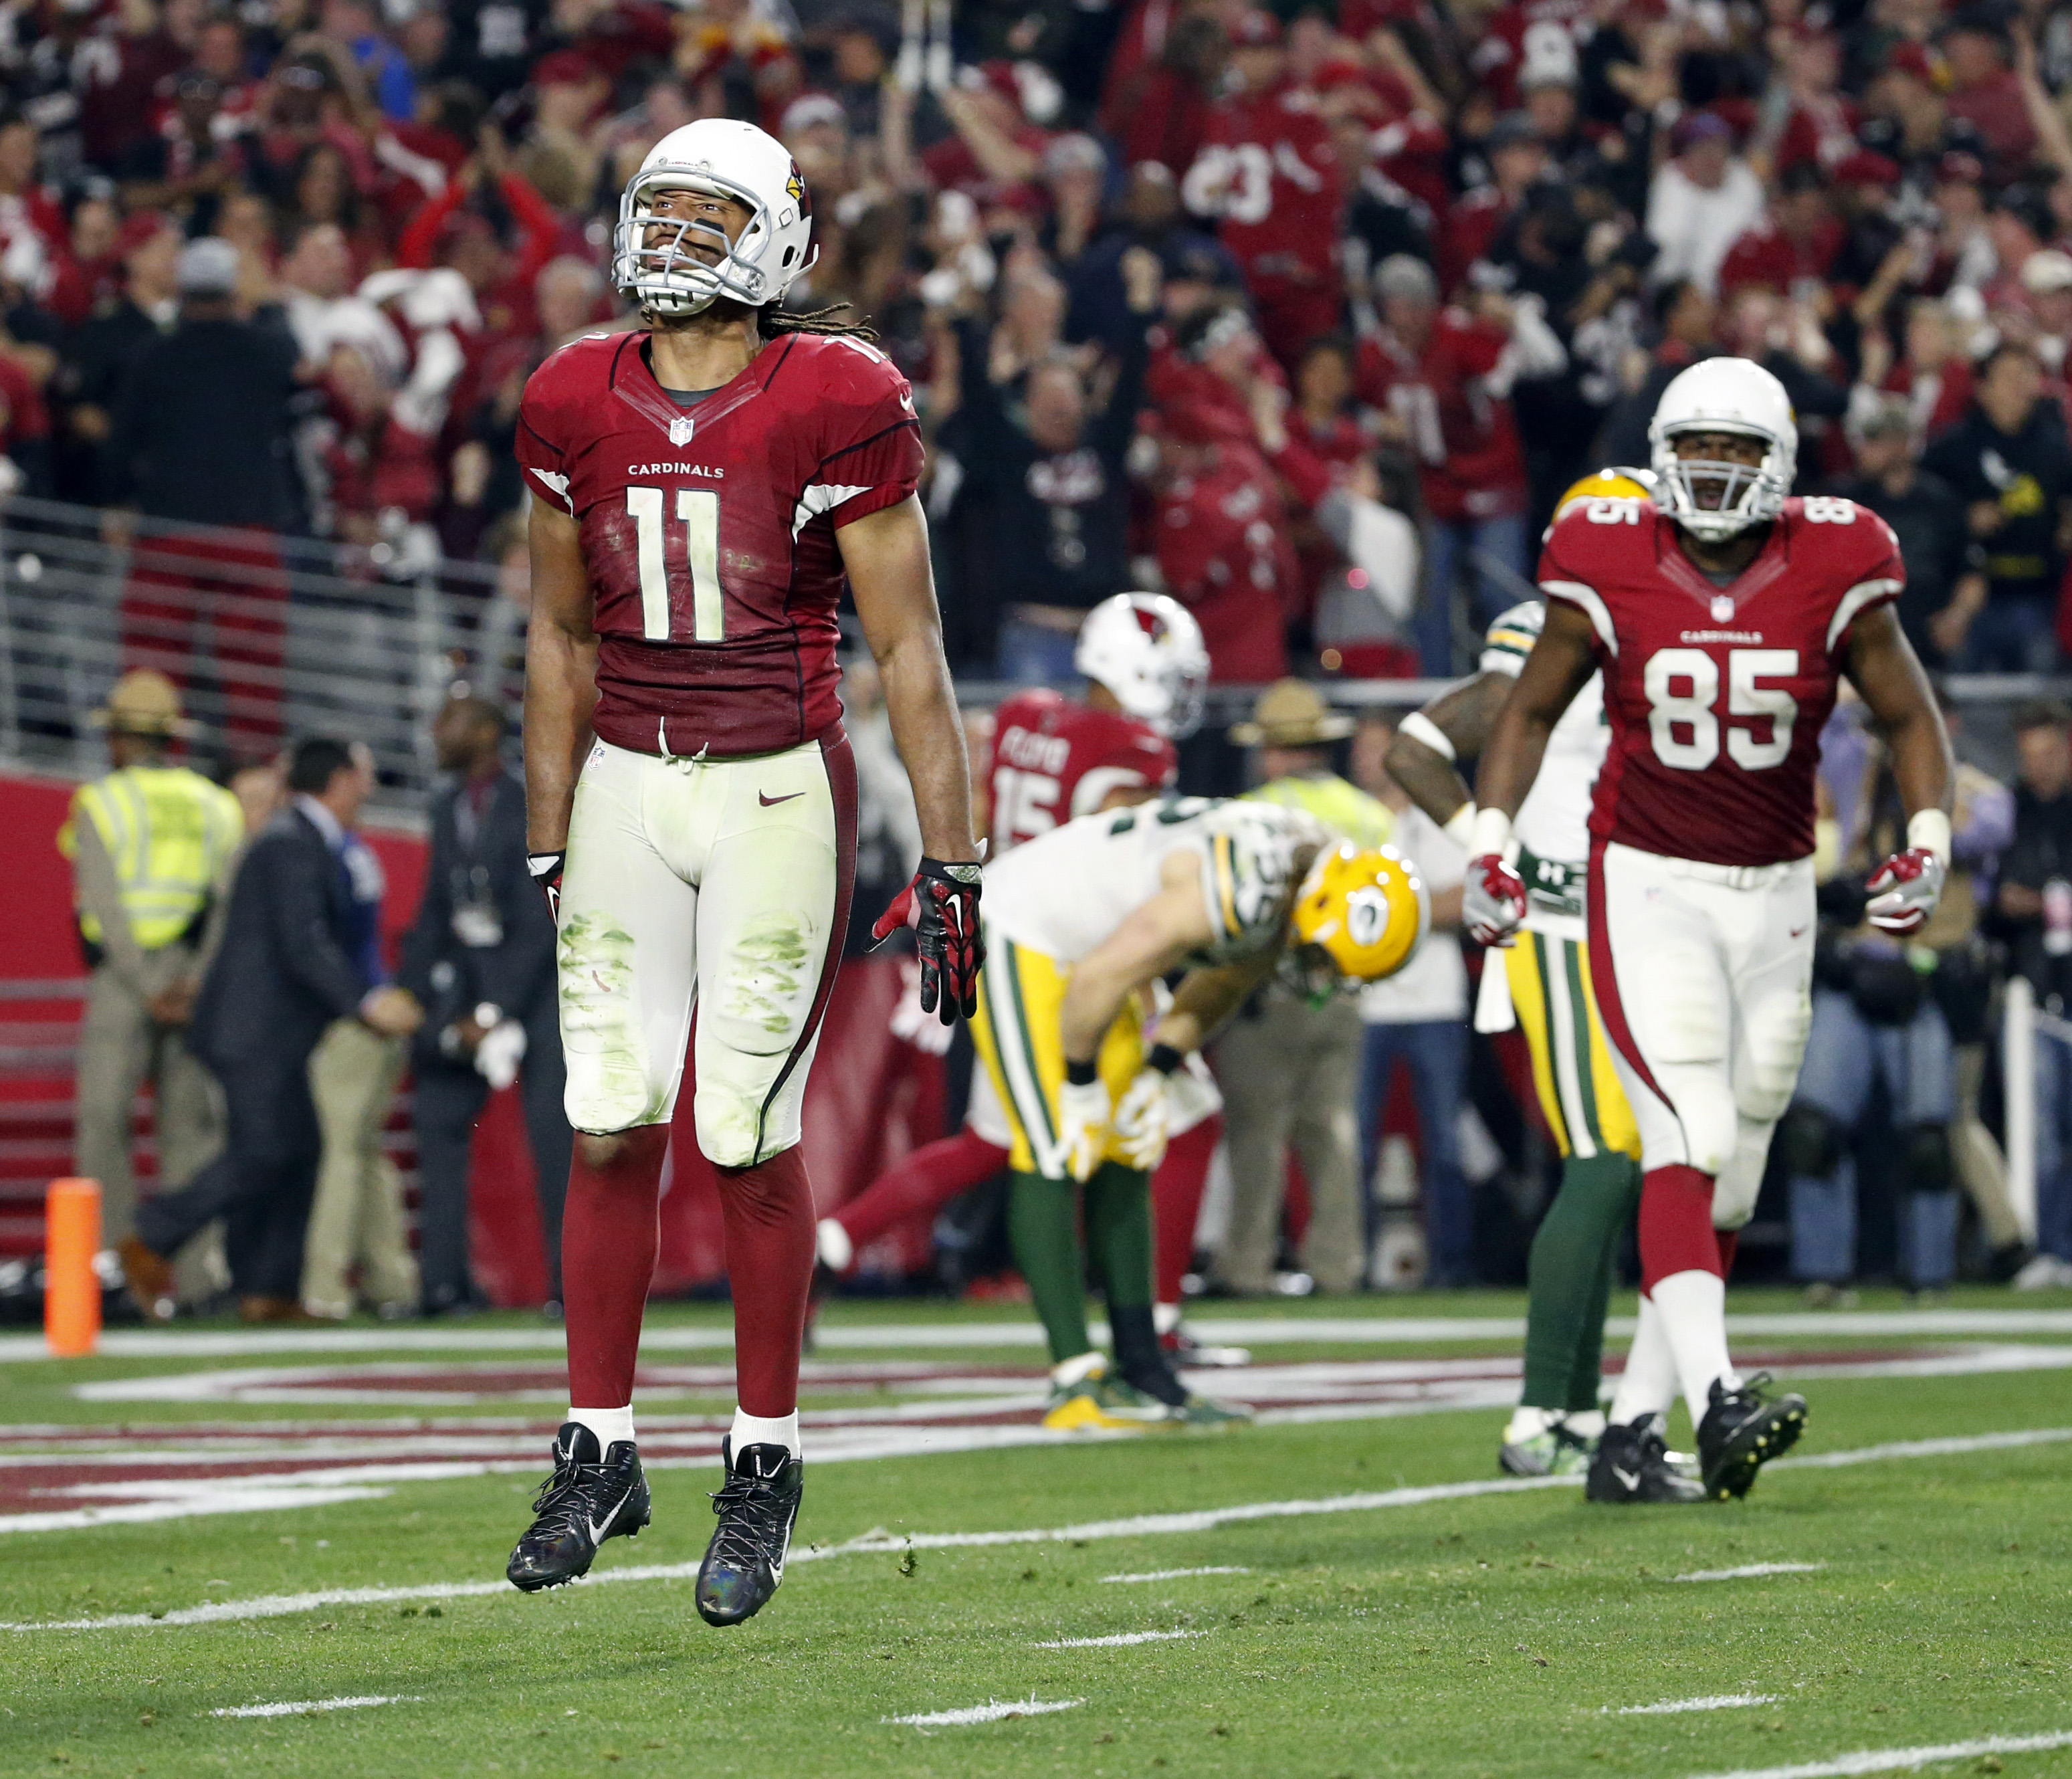 Arizona Cardinals wide receiver Larry Fitzgerald (11) celebrates his game winning touchdown against the Green Bay Packers during overtime of an NFL divisional playoff football game, Saturday, Jan. 16, 2016, in Glendale, Ariz. The Cardinals won 26-20 in ov